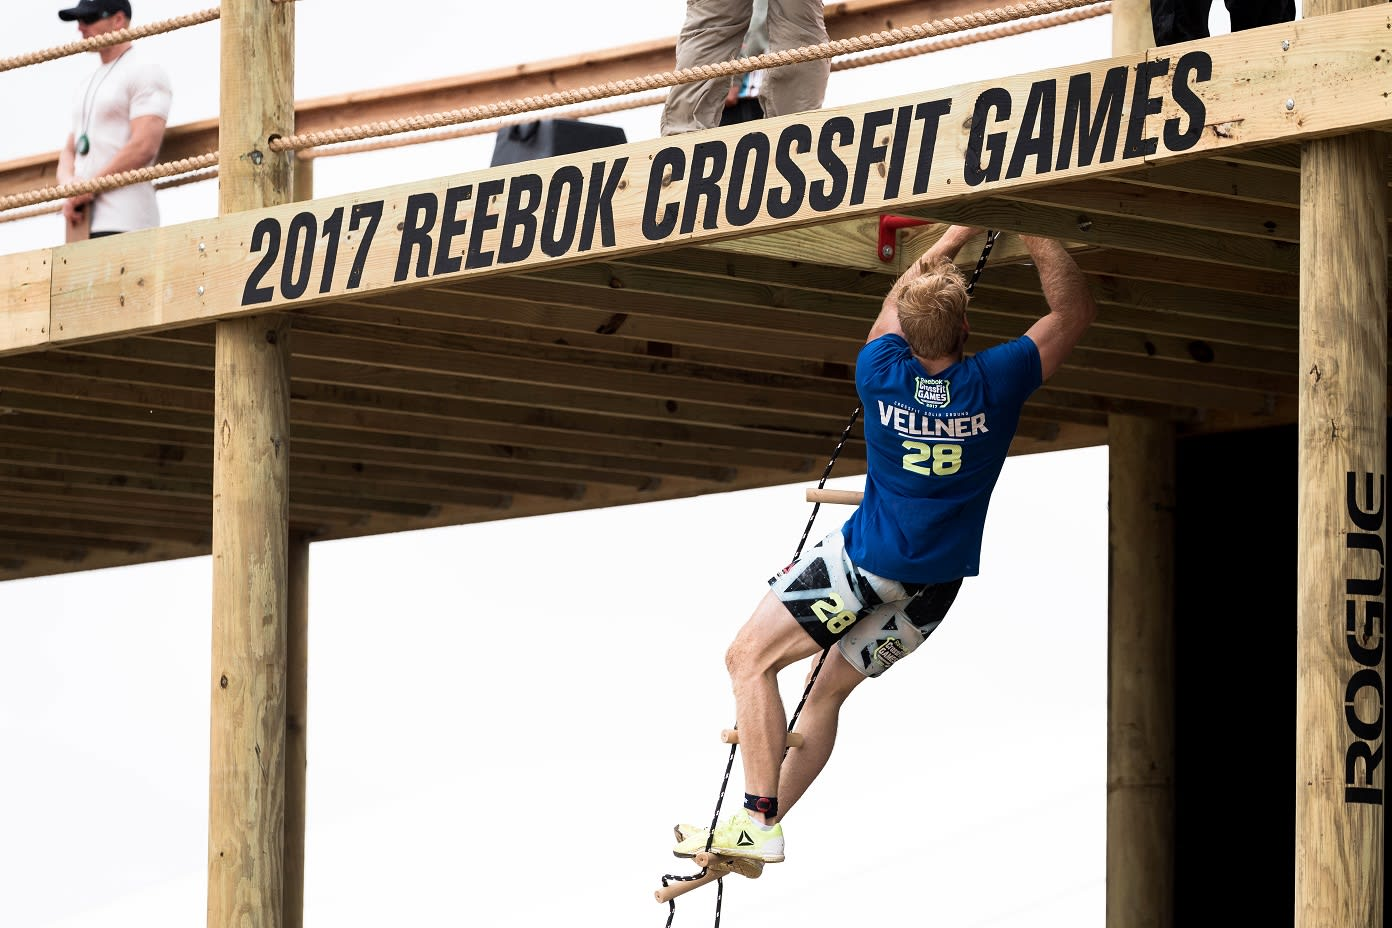 cfgames-roundup-obstacle-pat-vellner